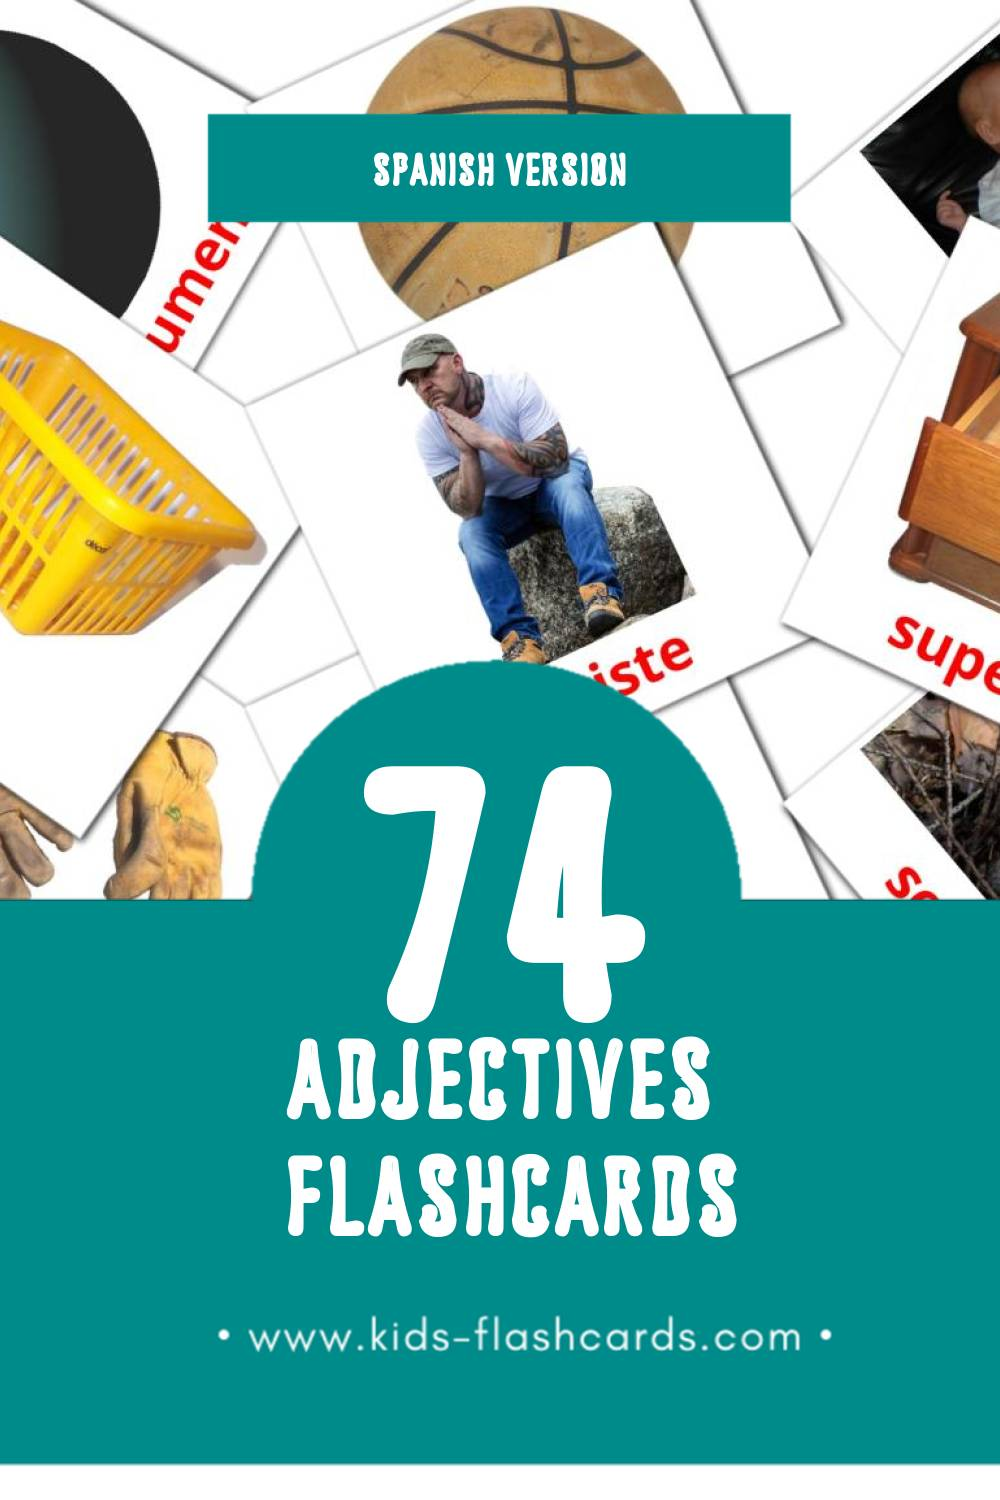 Visual Adjetivos  Flashcards for Toddlers (74 cards in Spanish)